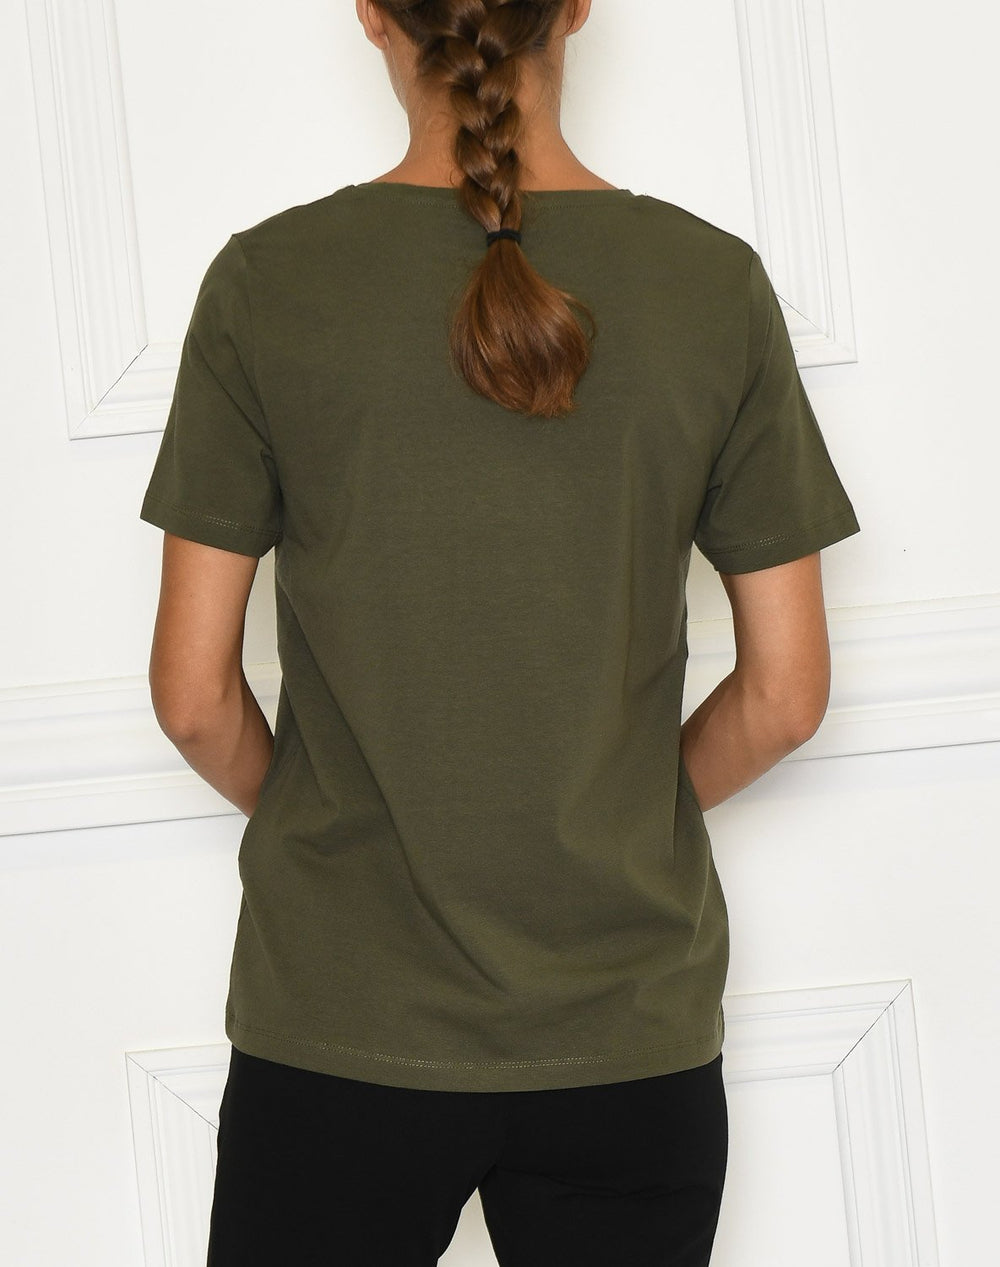 B.Young BYPANDINA t-shirt embroidery olive night - Online-Mode